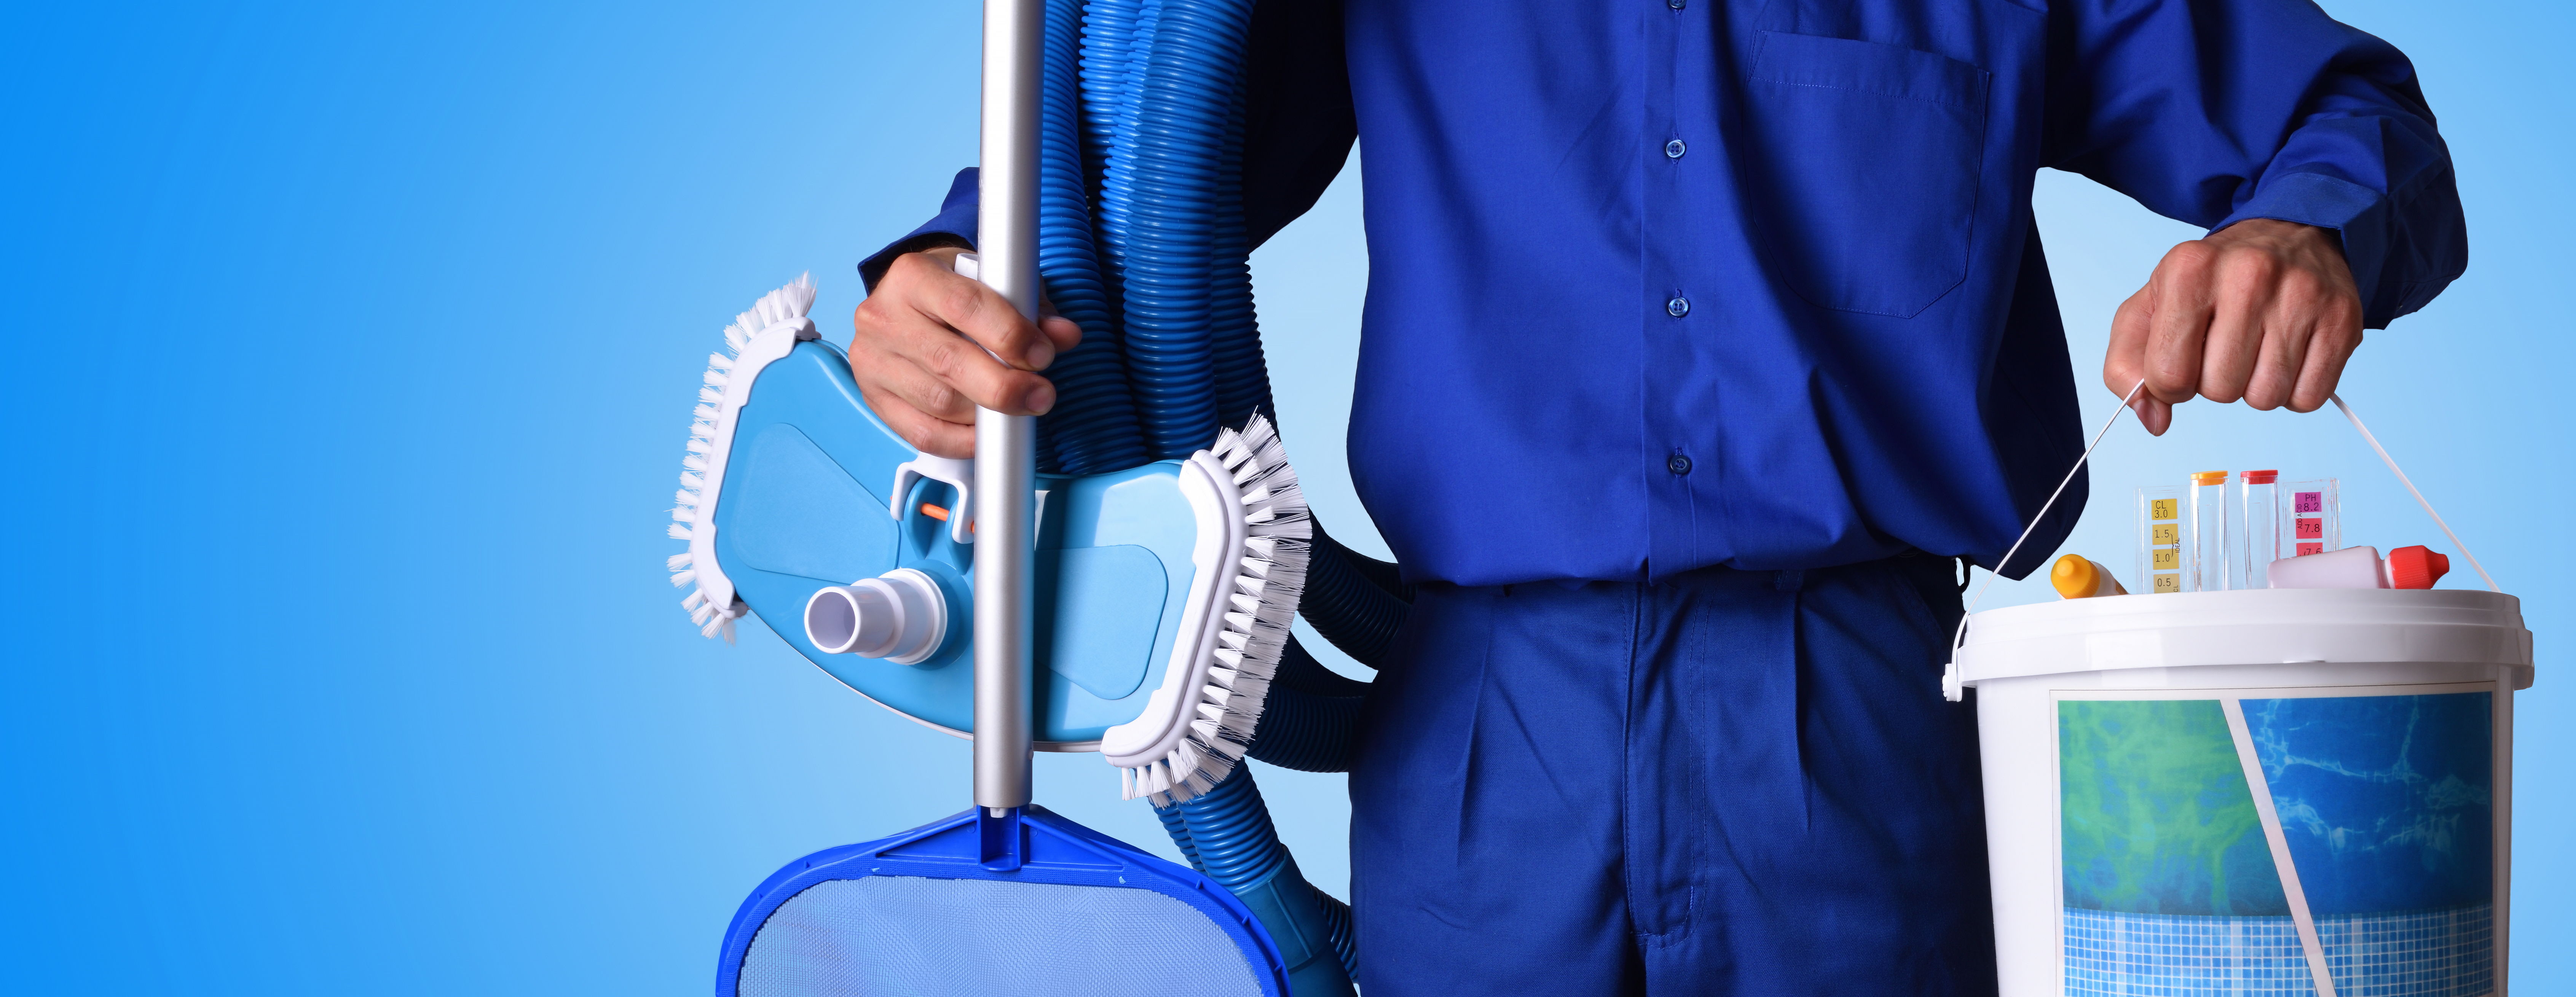 cleaner holding his equipment